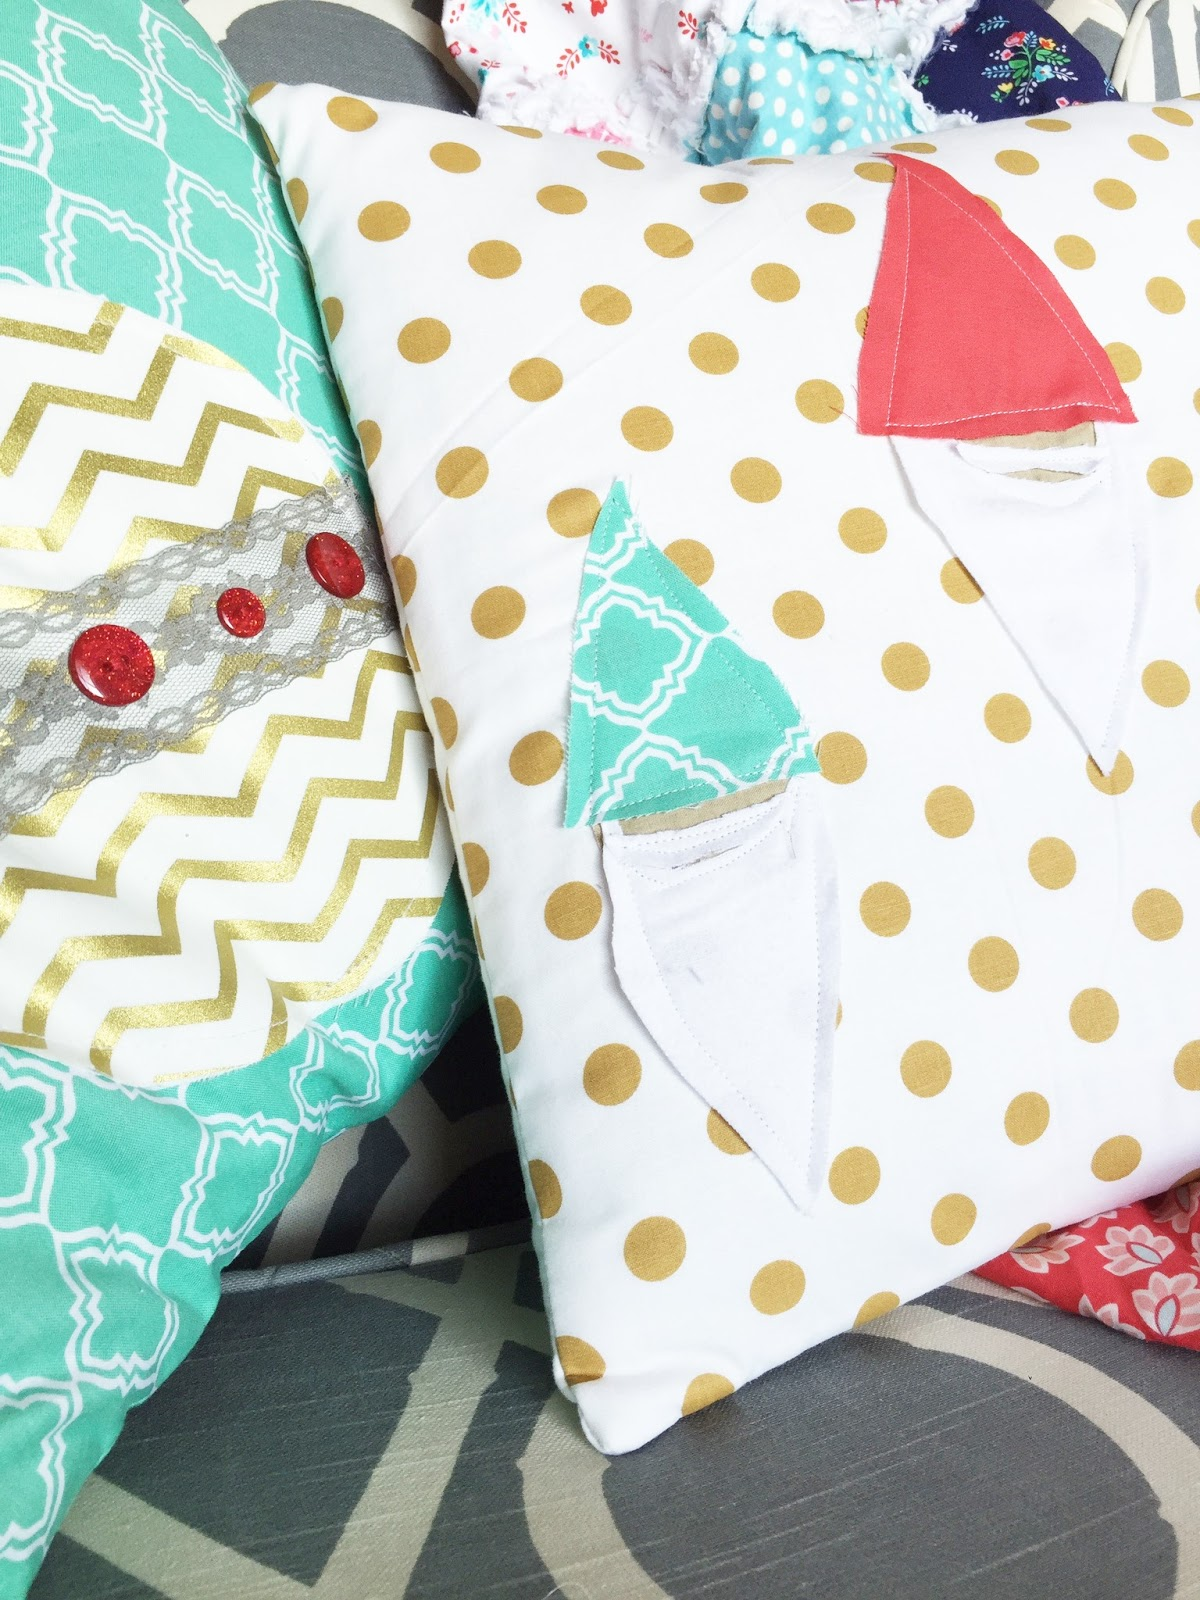 how to sew a gnome pillow sham a vision to remember all things handmade blog how to sew a. Black Bedroom Furniture Sets. Home Design Ideas